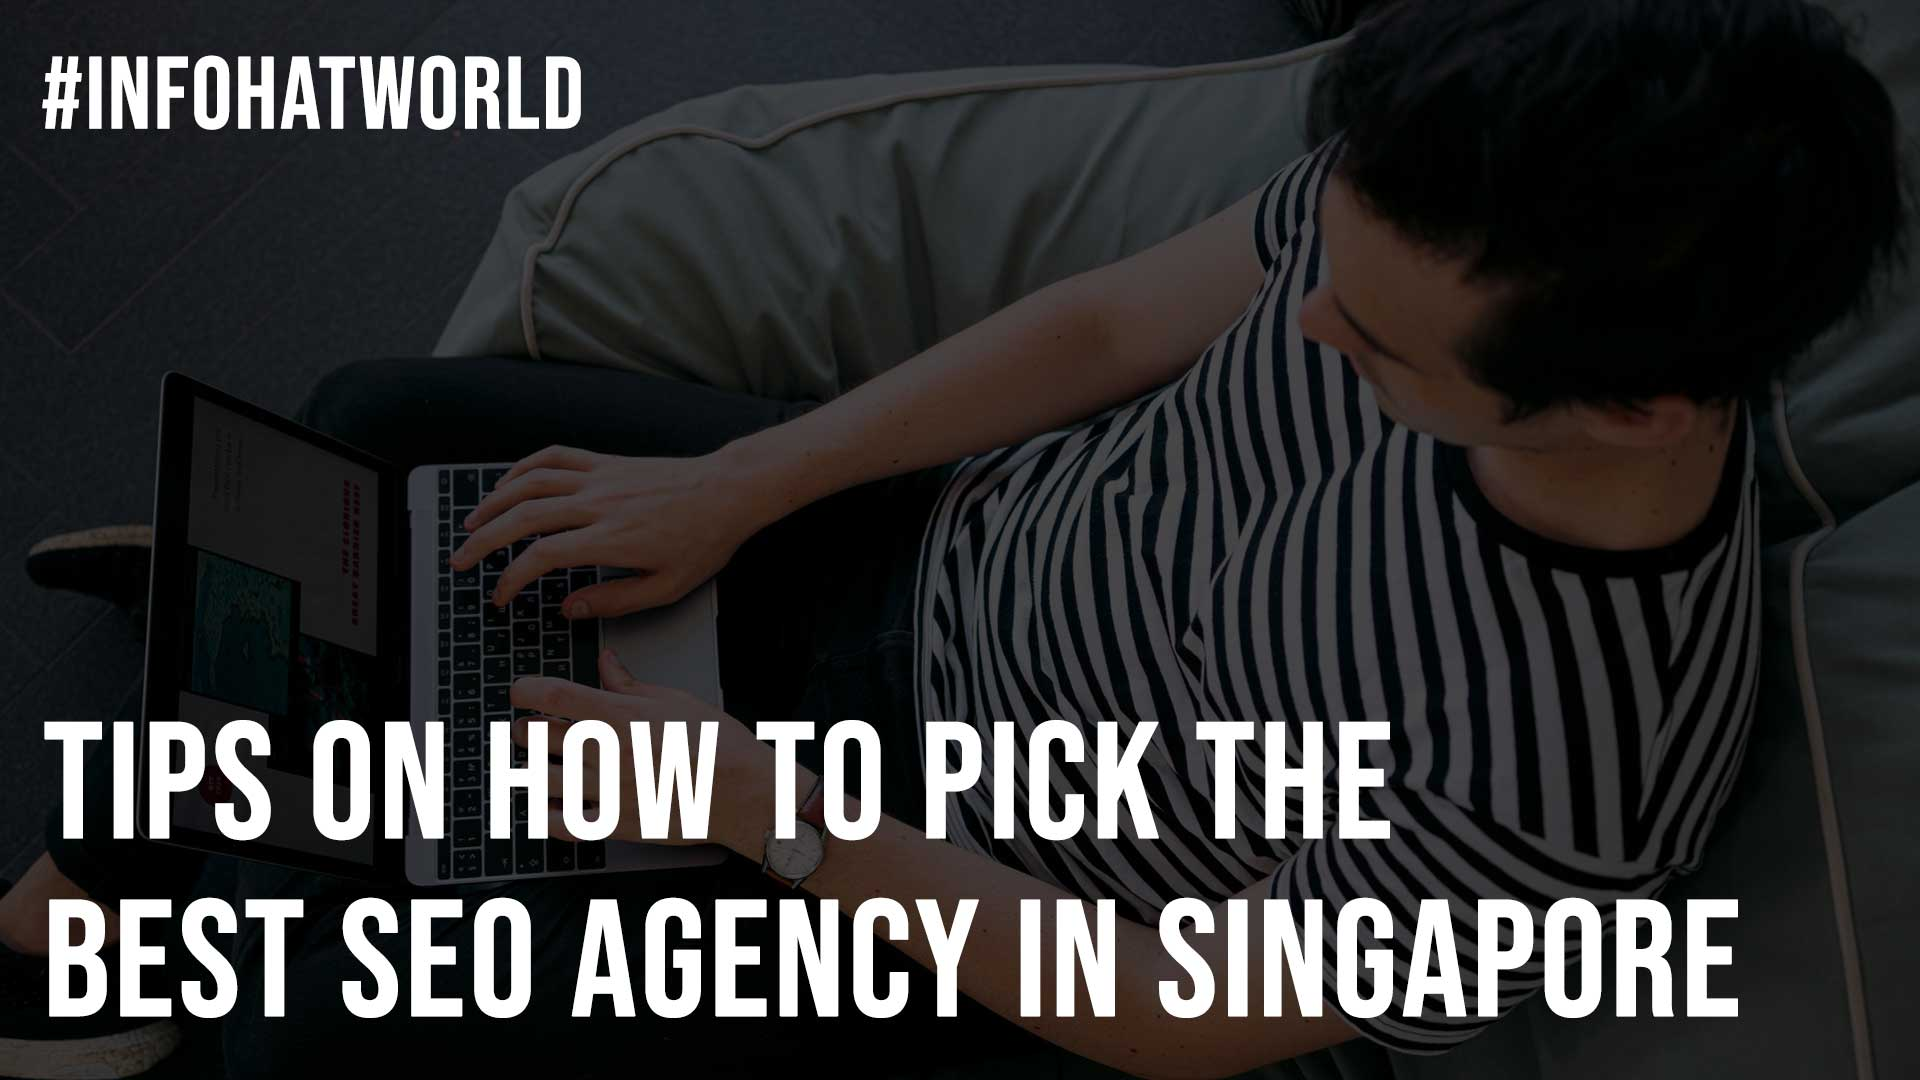 Tips on How to Pick the Best SEO Agency in Singapore